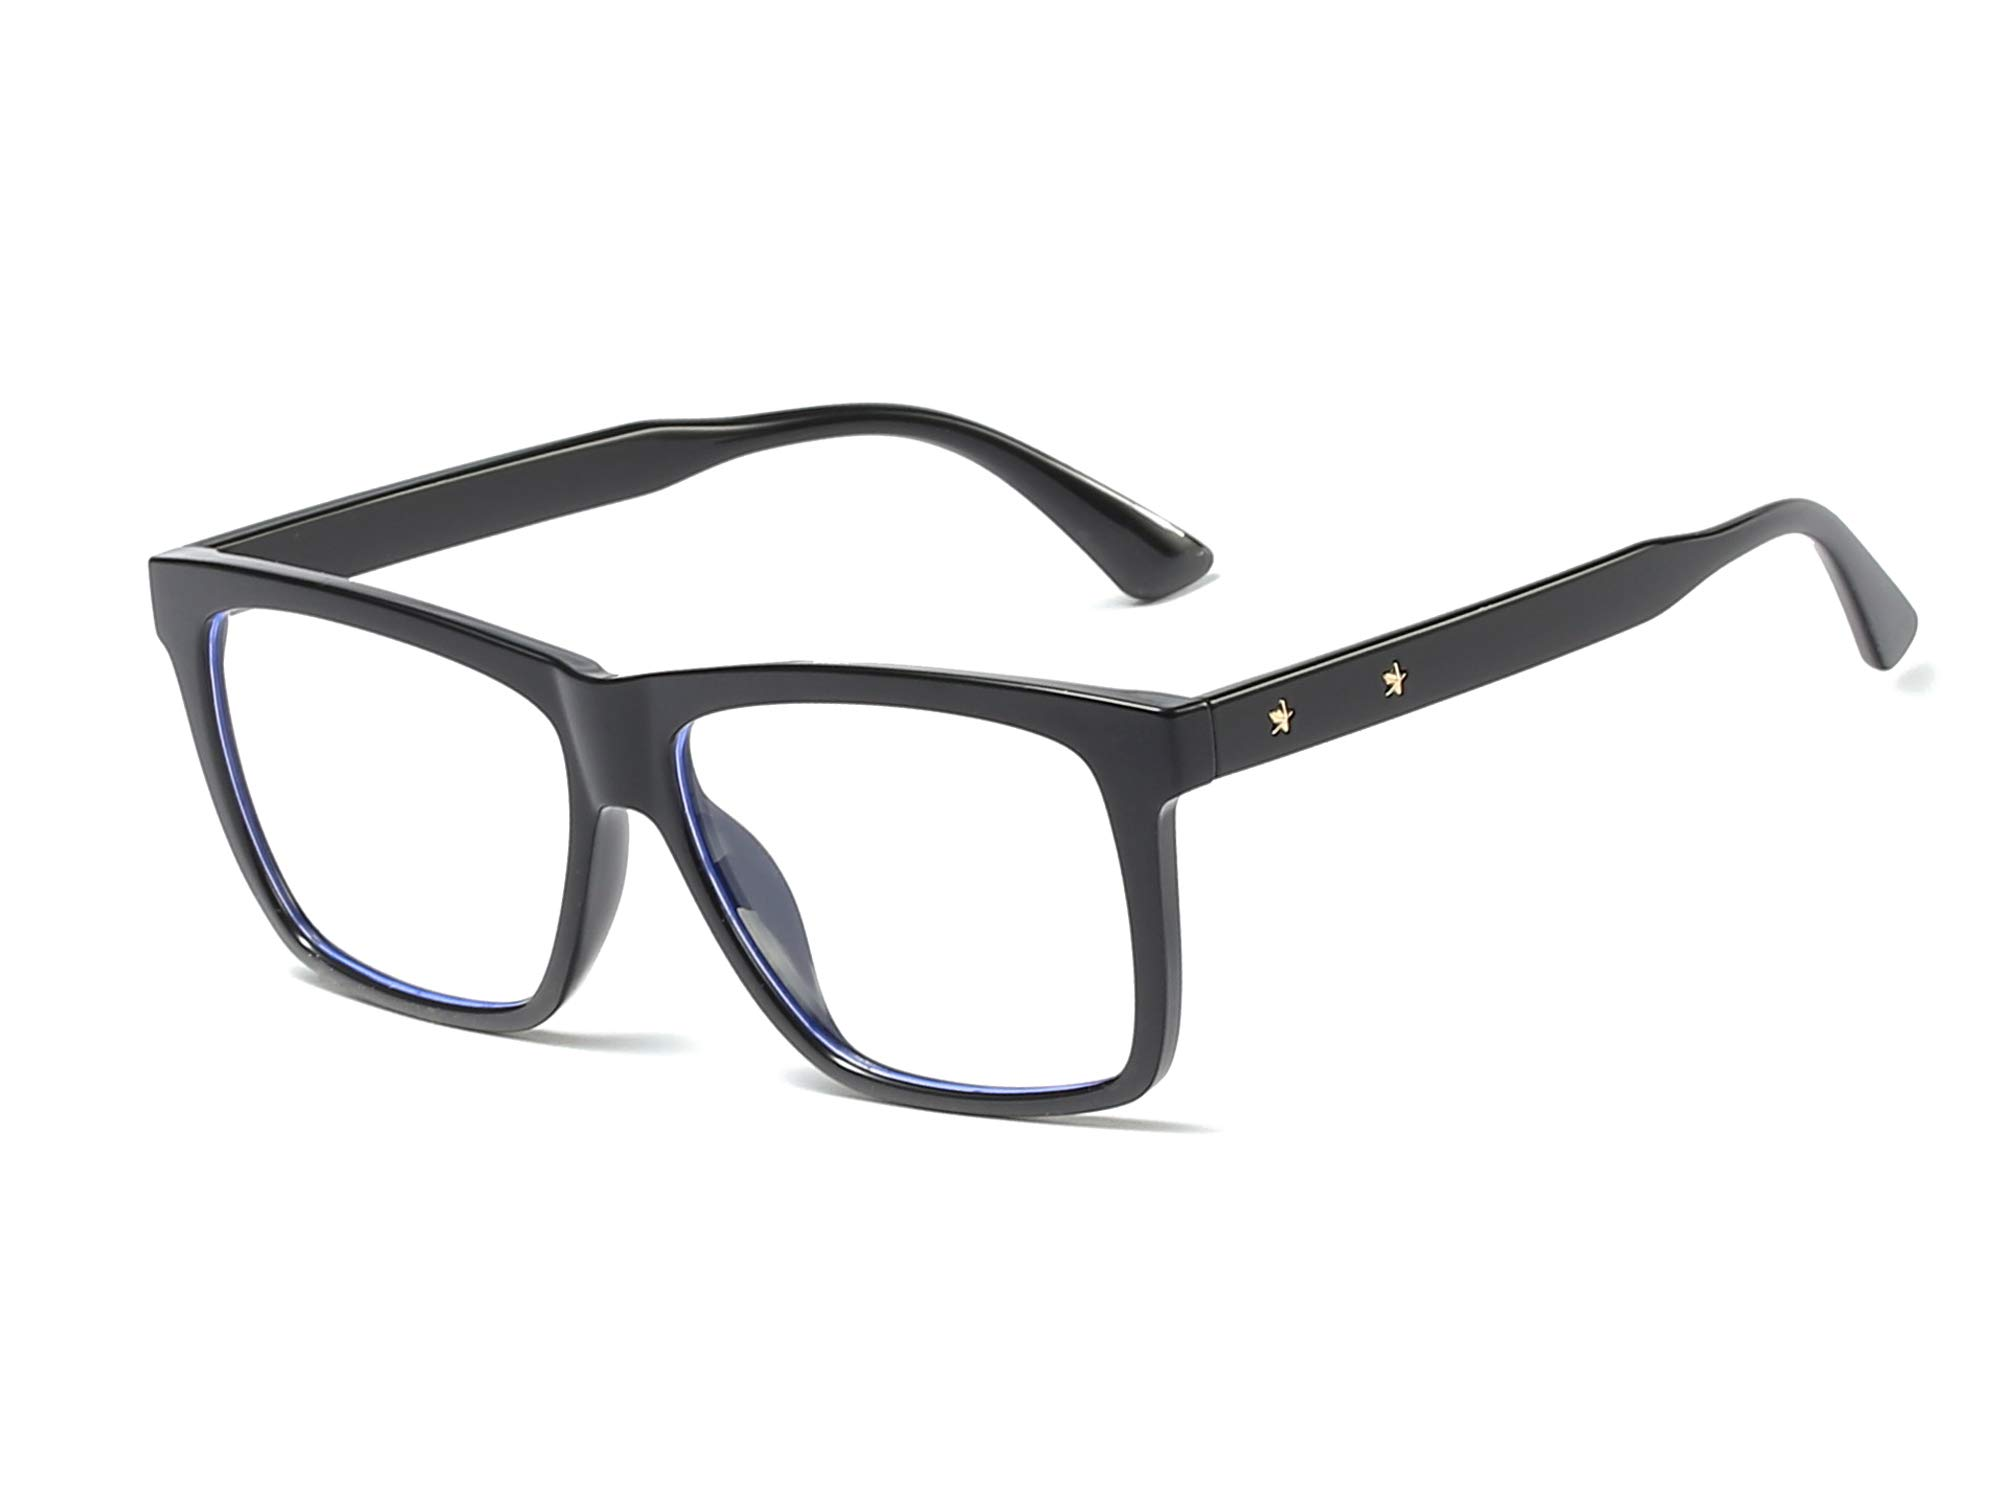 AZRRA-Unisex-Blue-Light-Blocking-Glasses-Square-Large-Eyewear-TR90-Lightweight-Computer-Game-Eyeglasses-Frame